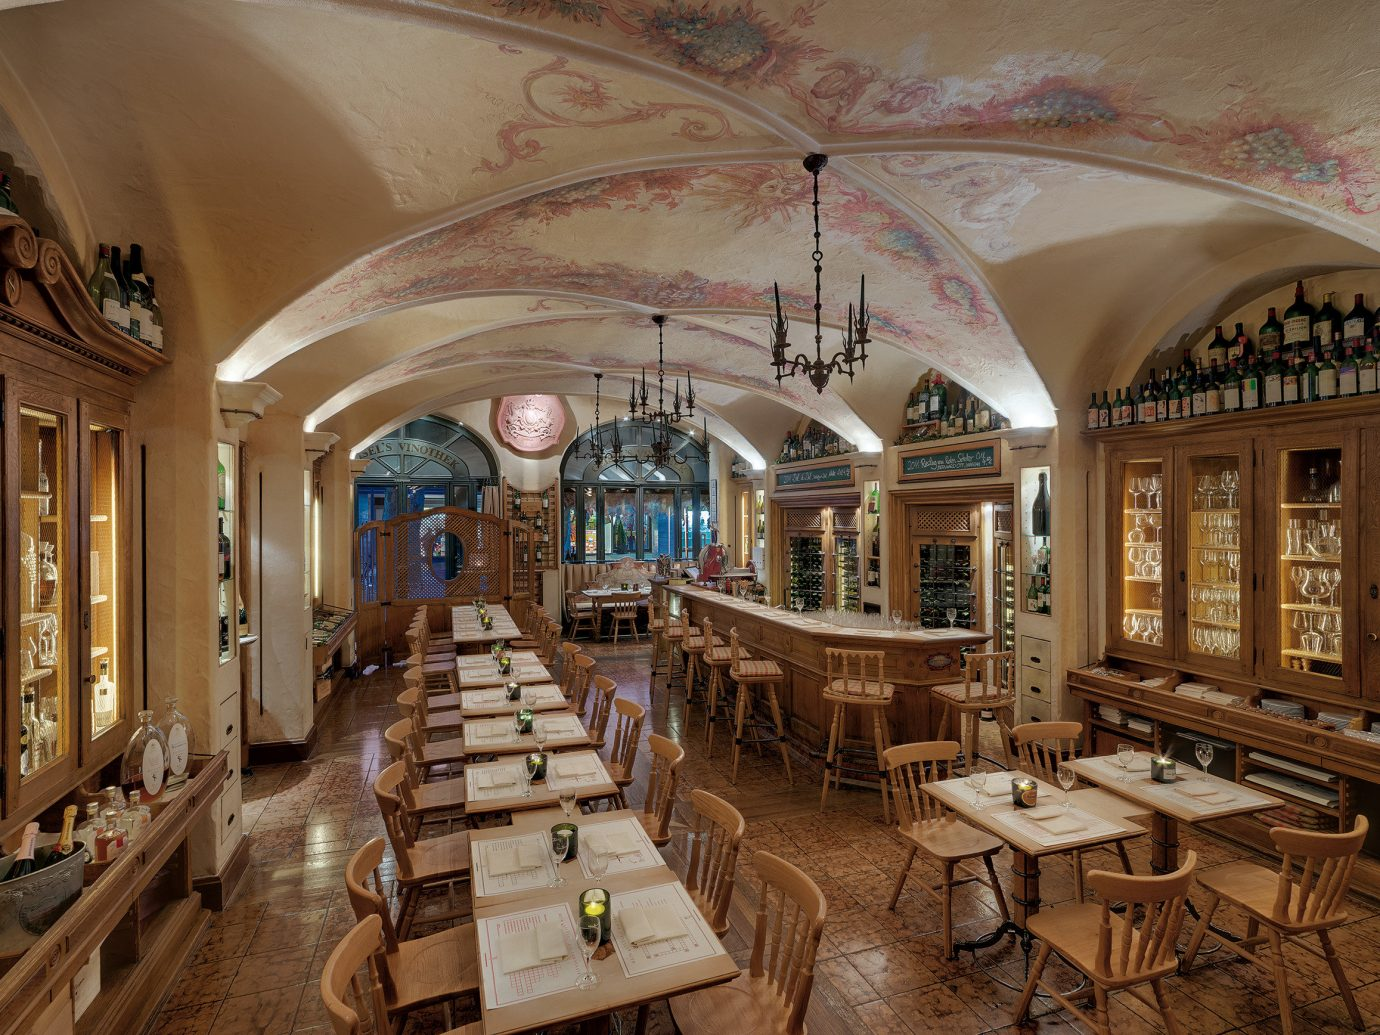 europe Germany Hotels Munich indoor interior design ceiling restaurant Lobby estate furniture several dining room